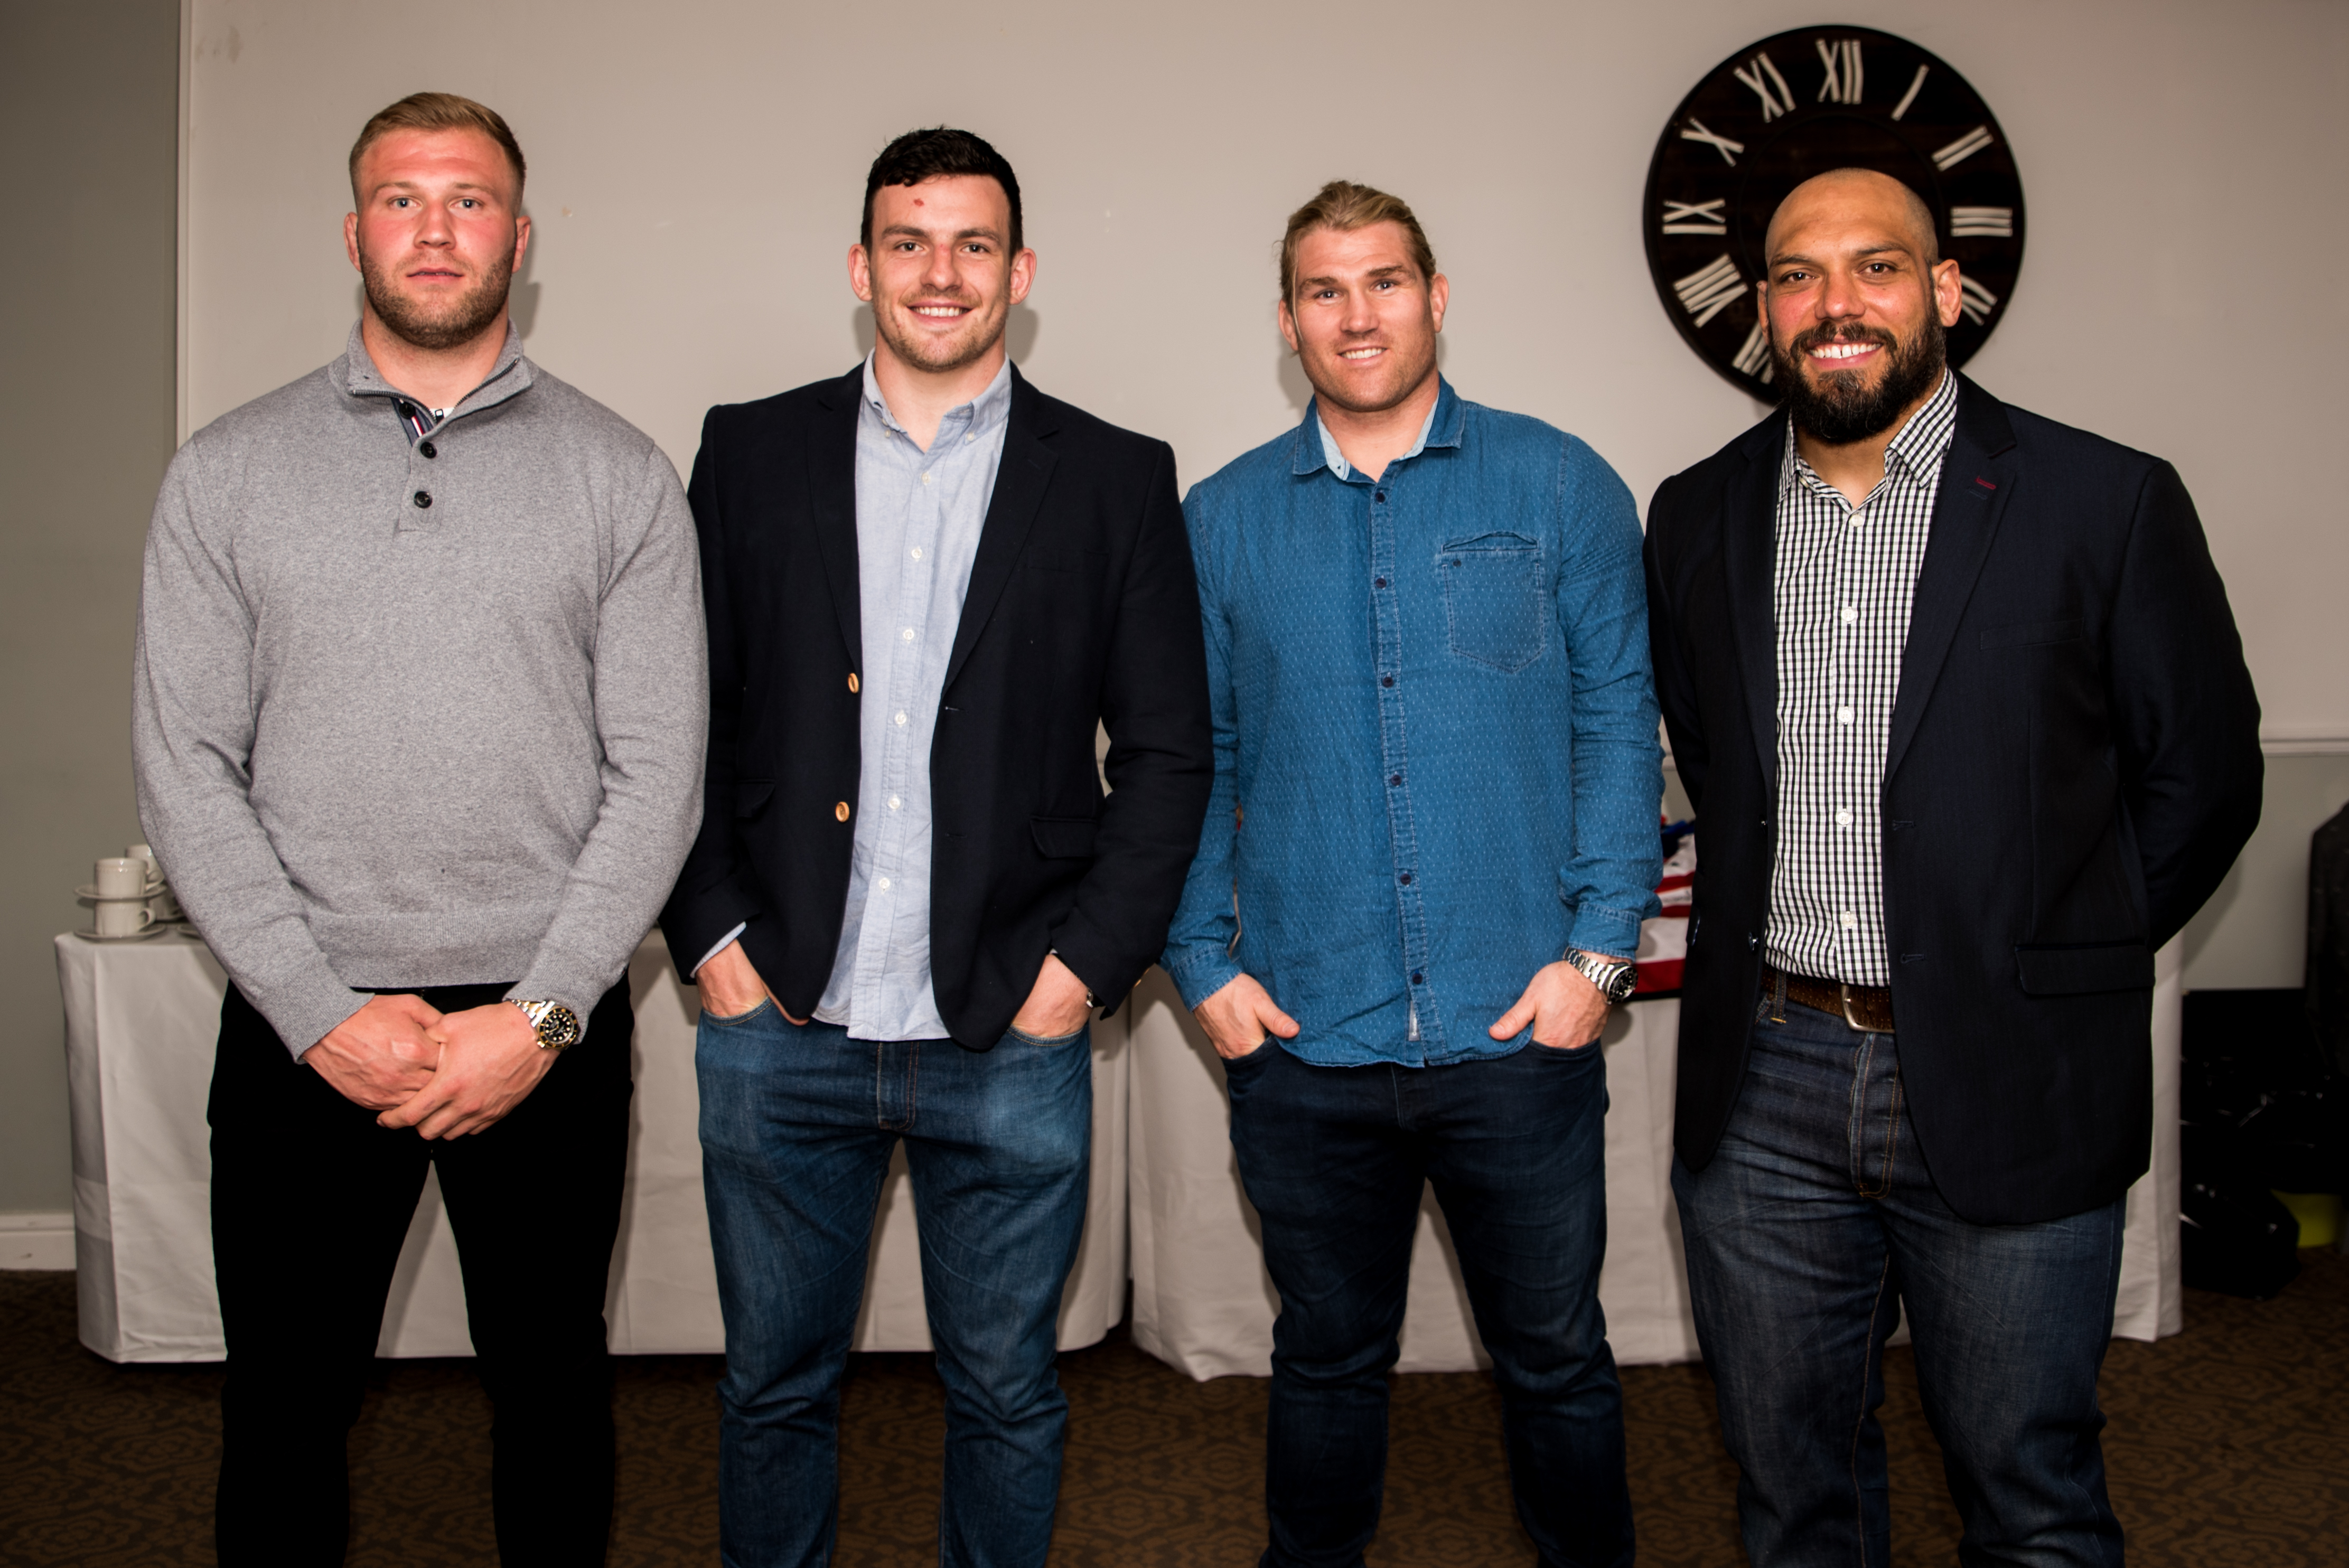 Aitch and Aitch Bee Richard Hibbard, Ross Moriarty, John Afoa, Matt Scott (9)